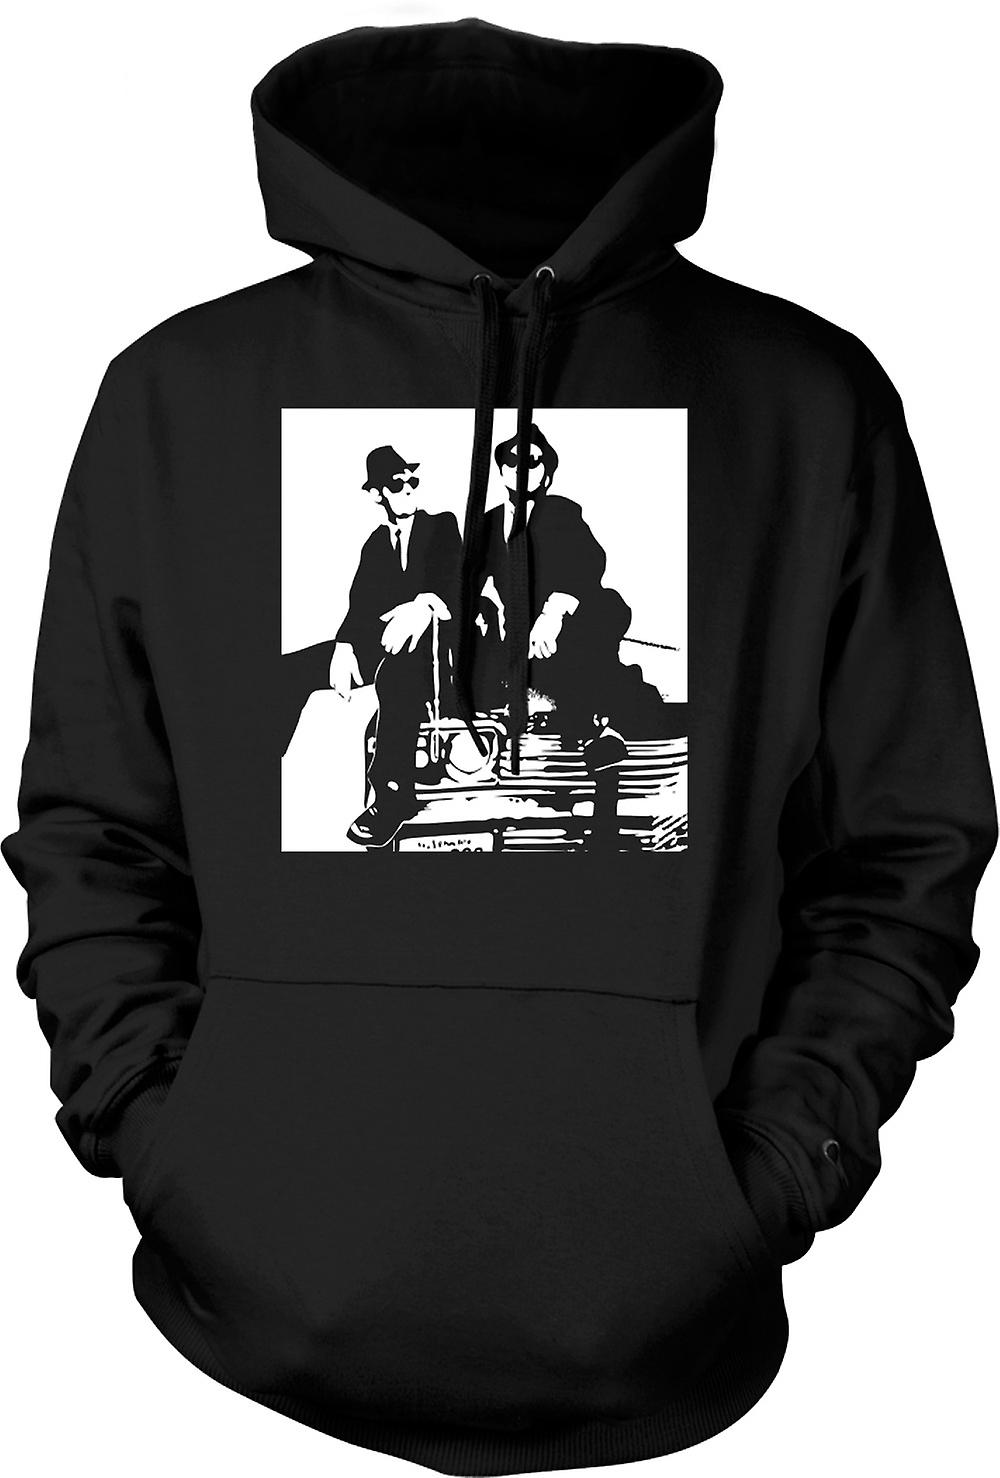 Mens-Hoodie - Blues Brothers - Pop-Art